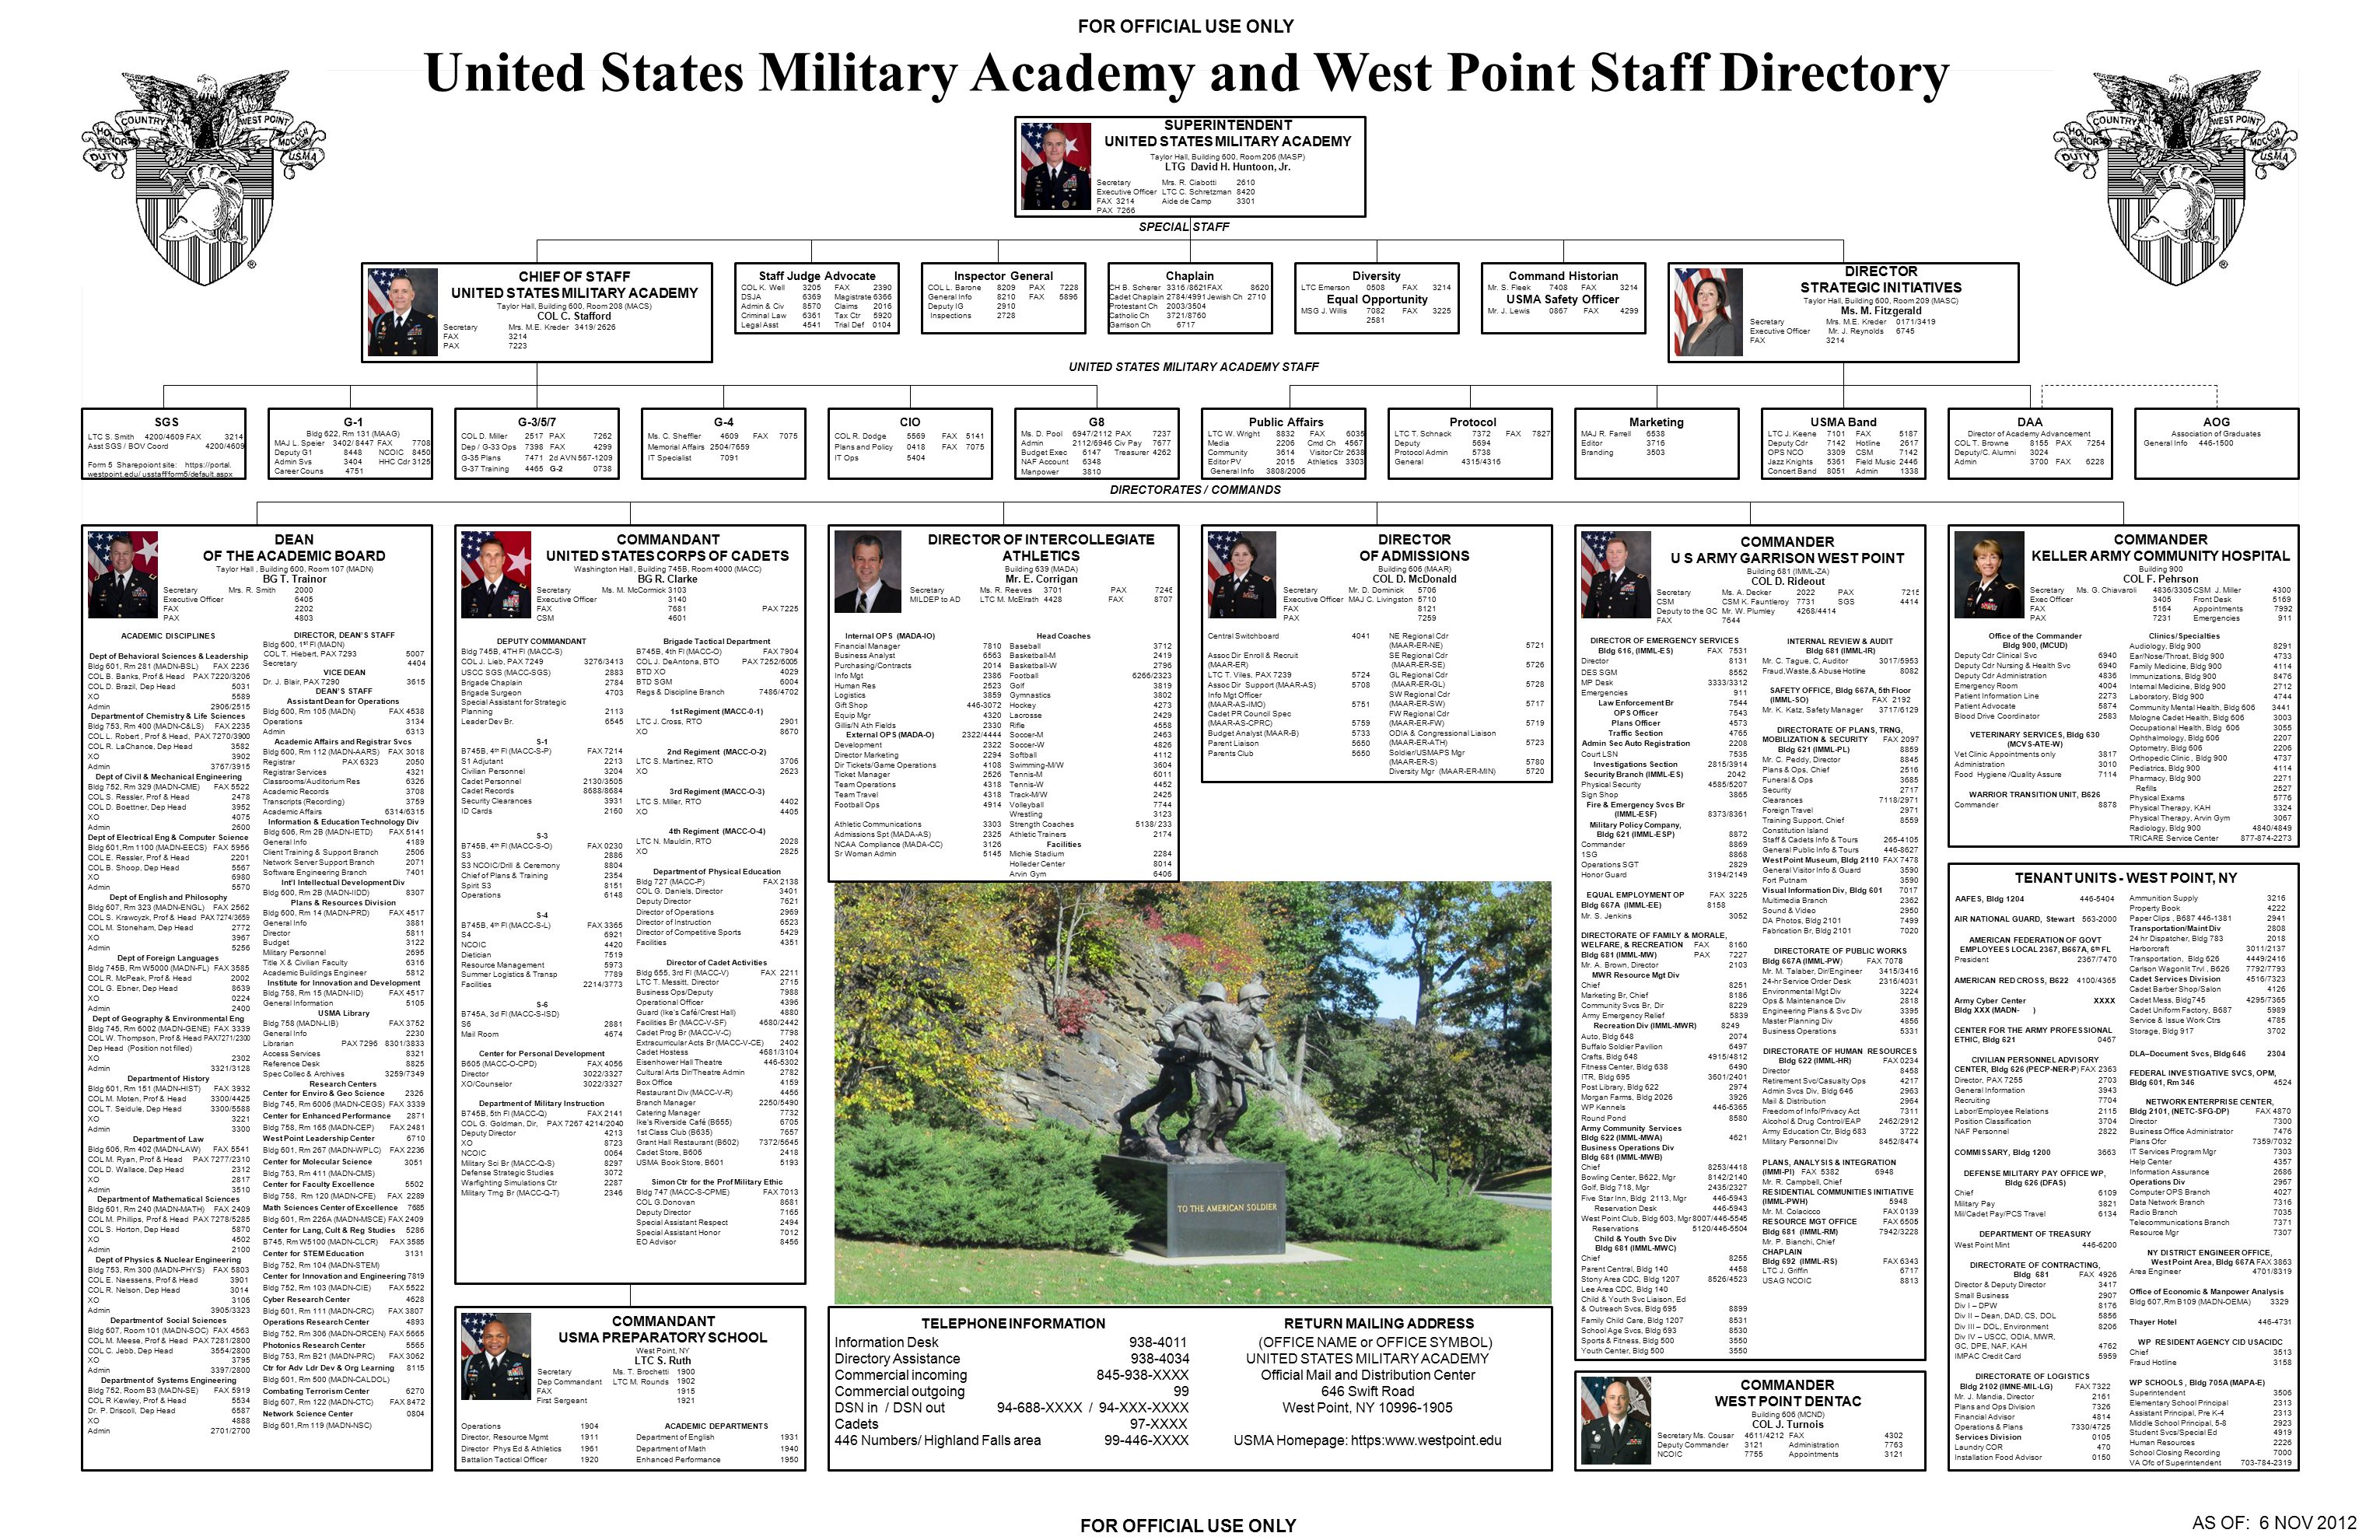 United States Military Academy and West Point Staff Directory